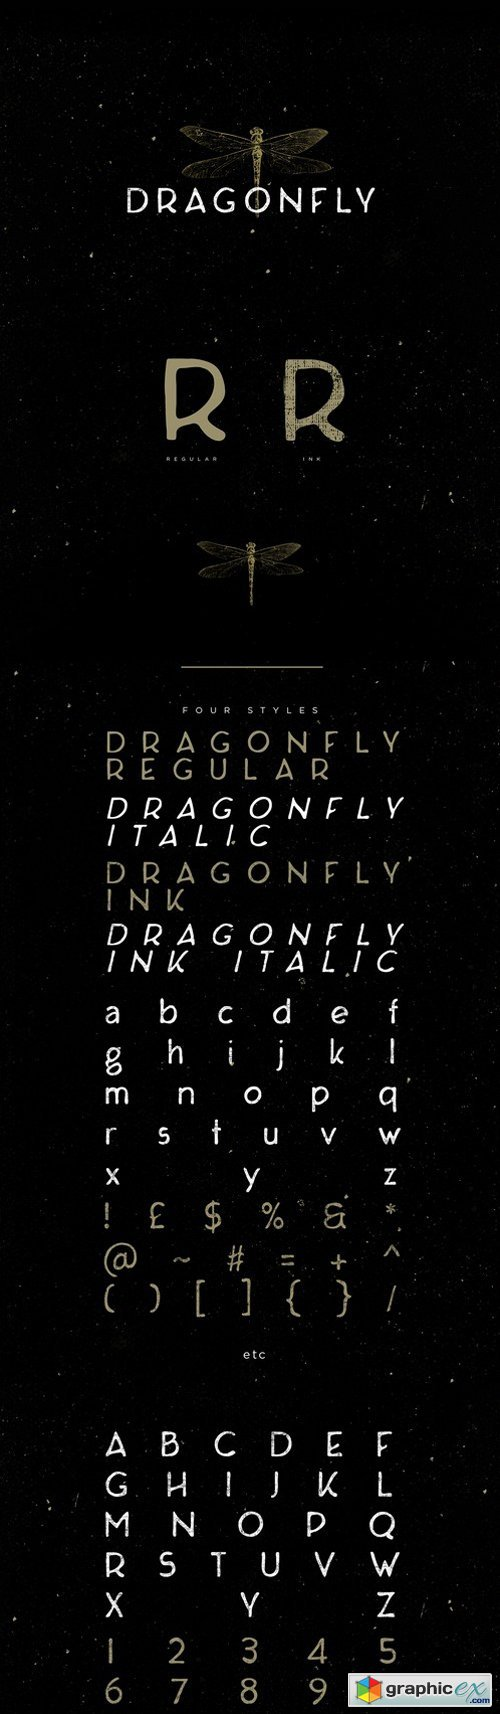 Dragonfly Typeface